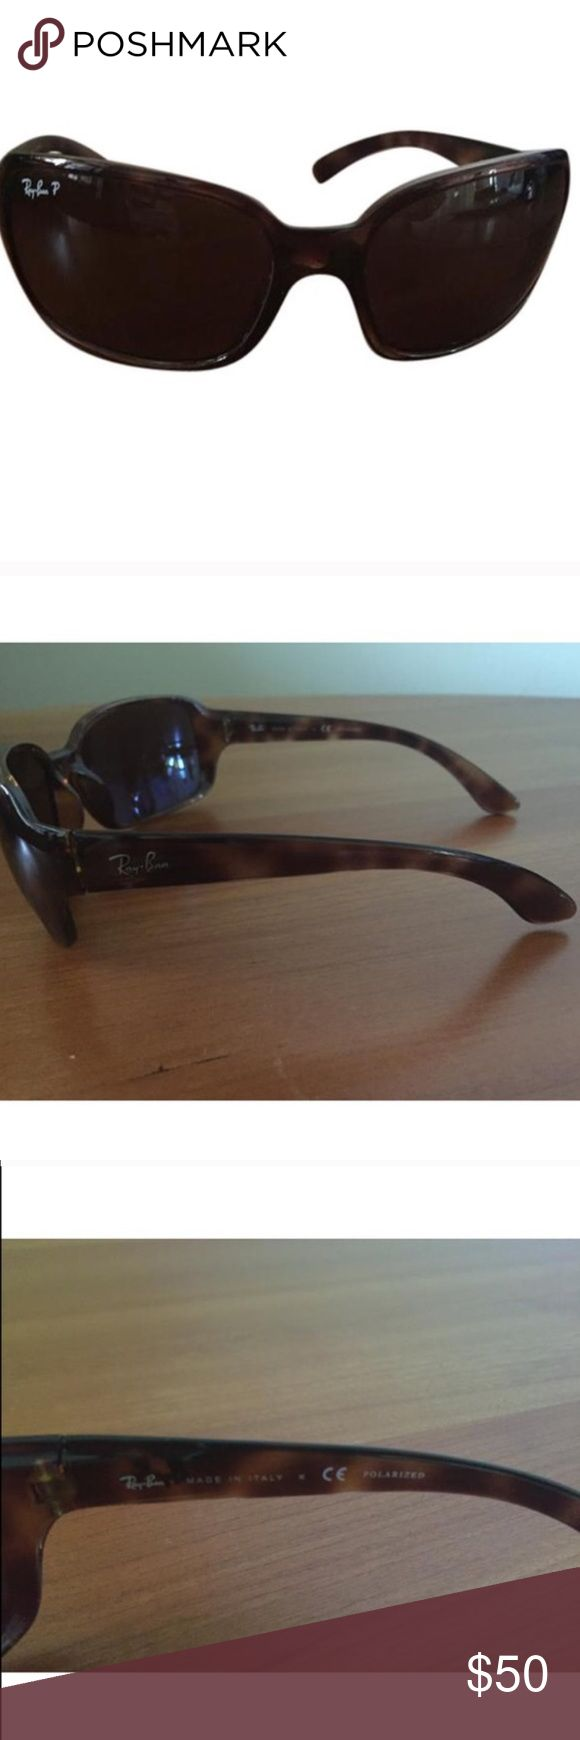 Ray-Ban Jackie Oh Sunglasses Polarized Ray-Ban Jackie Oh Sunglasses Polarized w/ tortoiseshell frame- super cute and in great condition! Too many pairs of Ray-Bans ... my loss is your gain! Ray-Ban Accessories Sunglasses